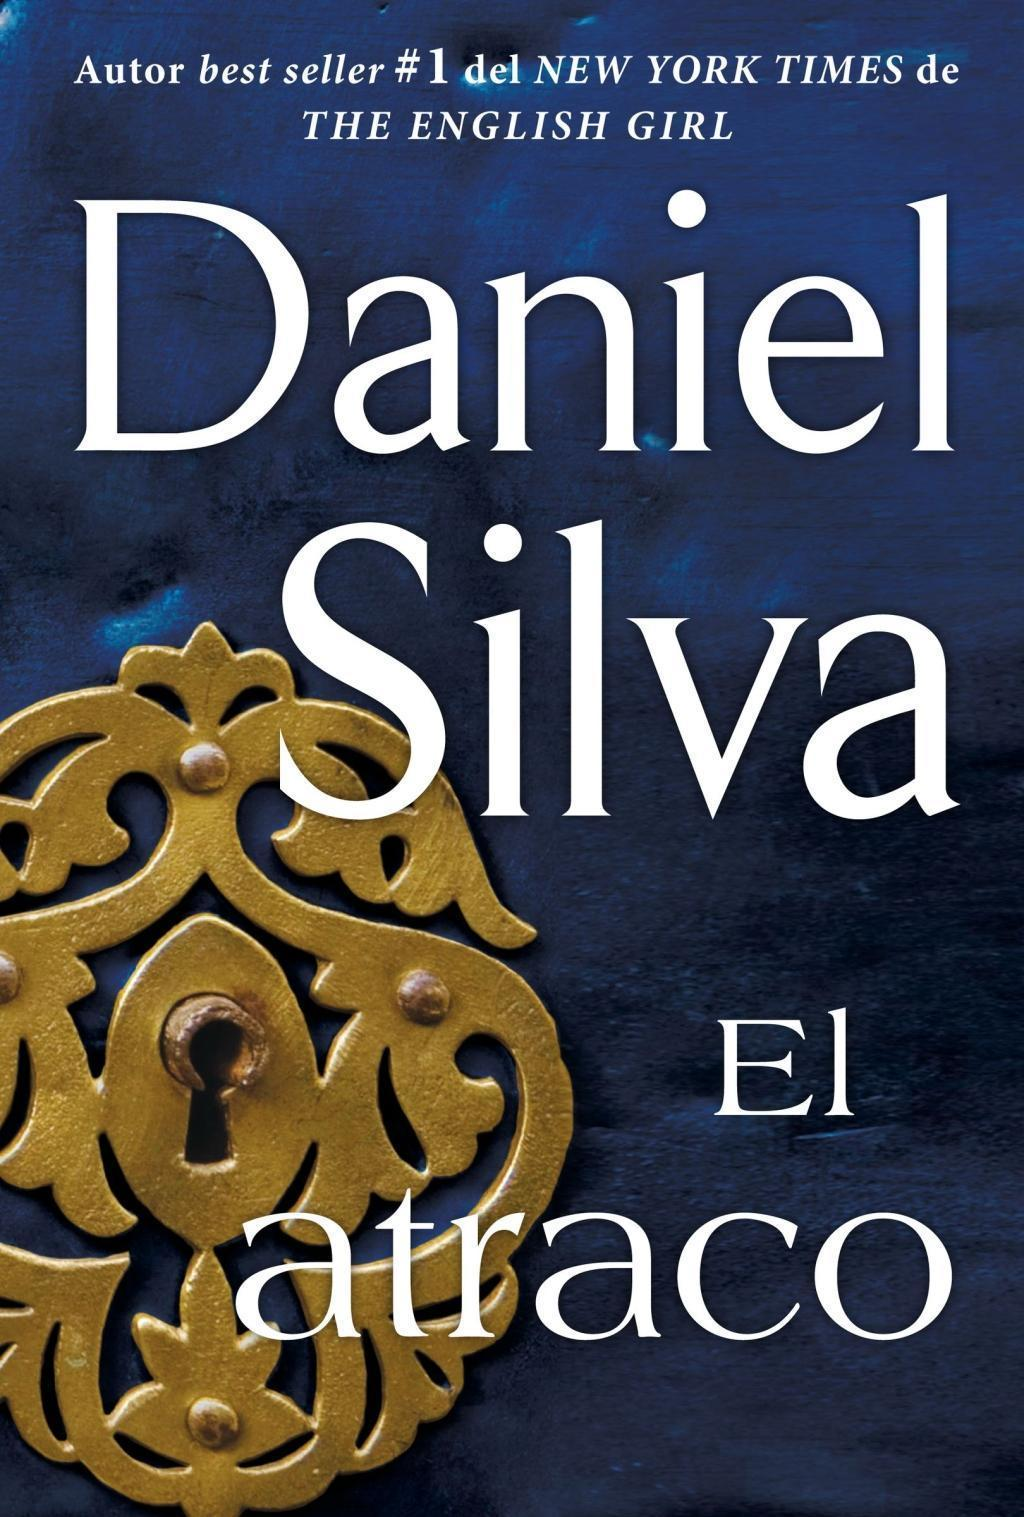 El atraco (The Heist - Spanish Edition)